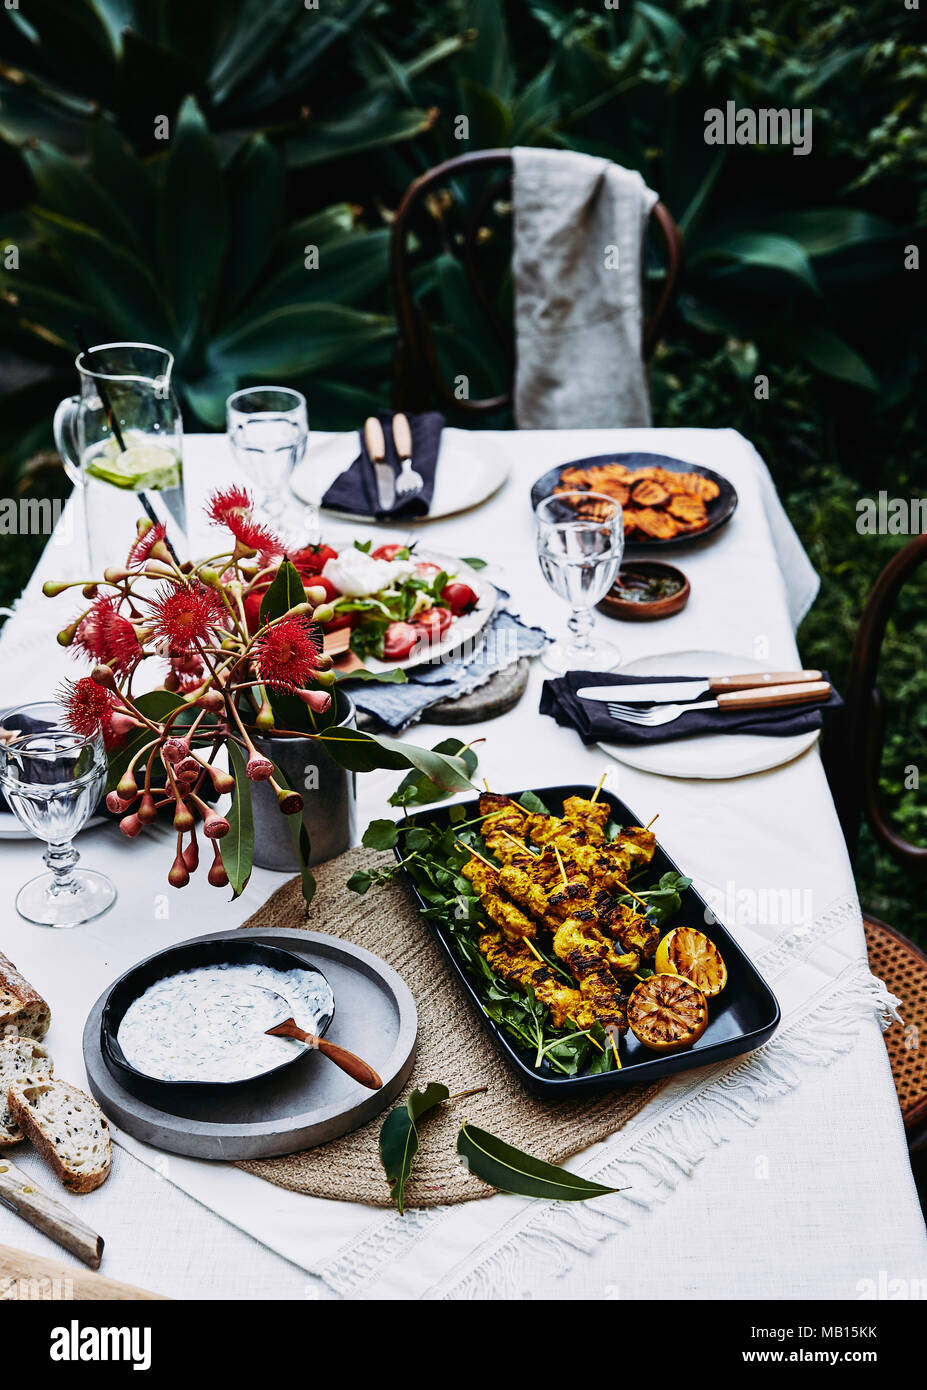 Summer outdoor picnic - Stock Image